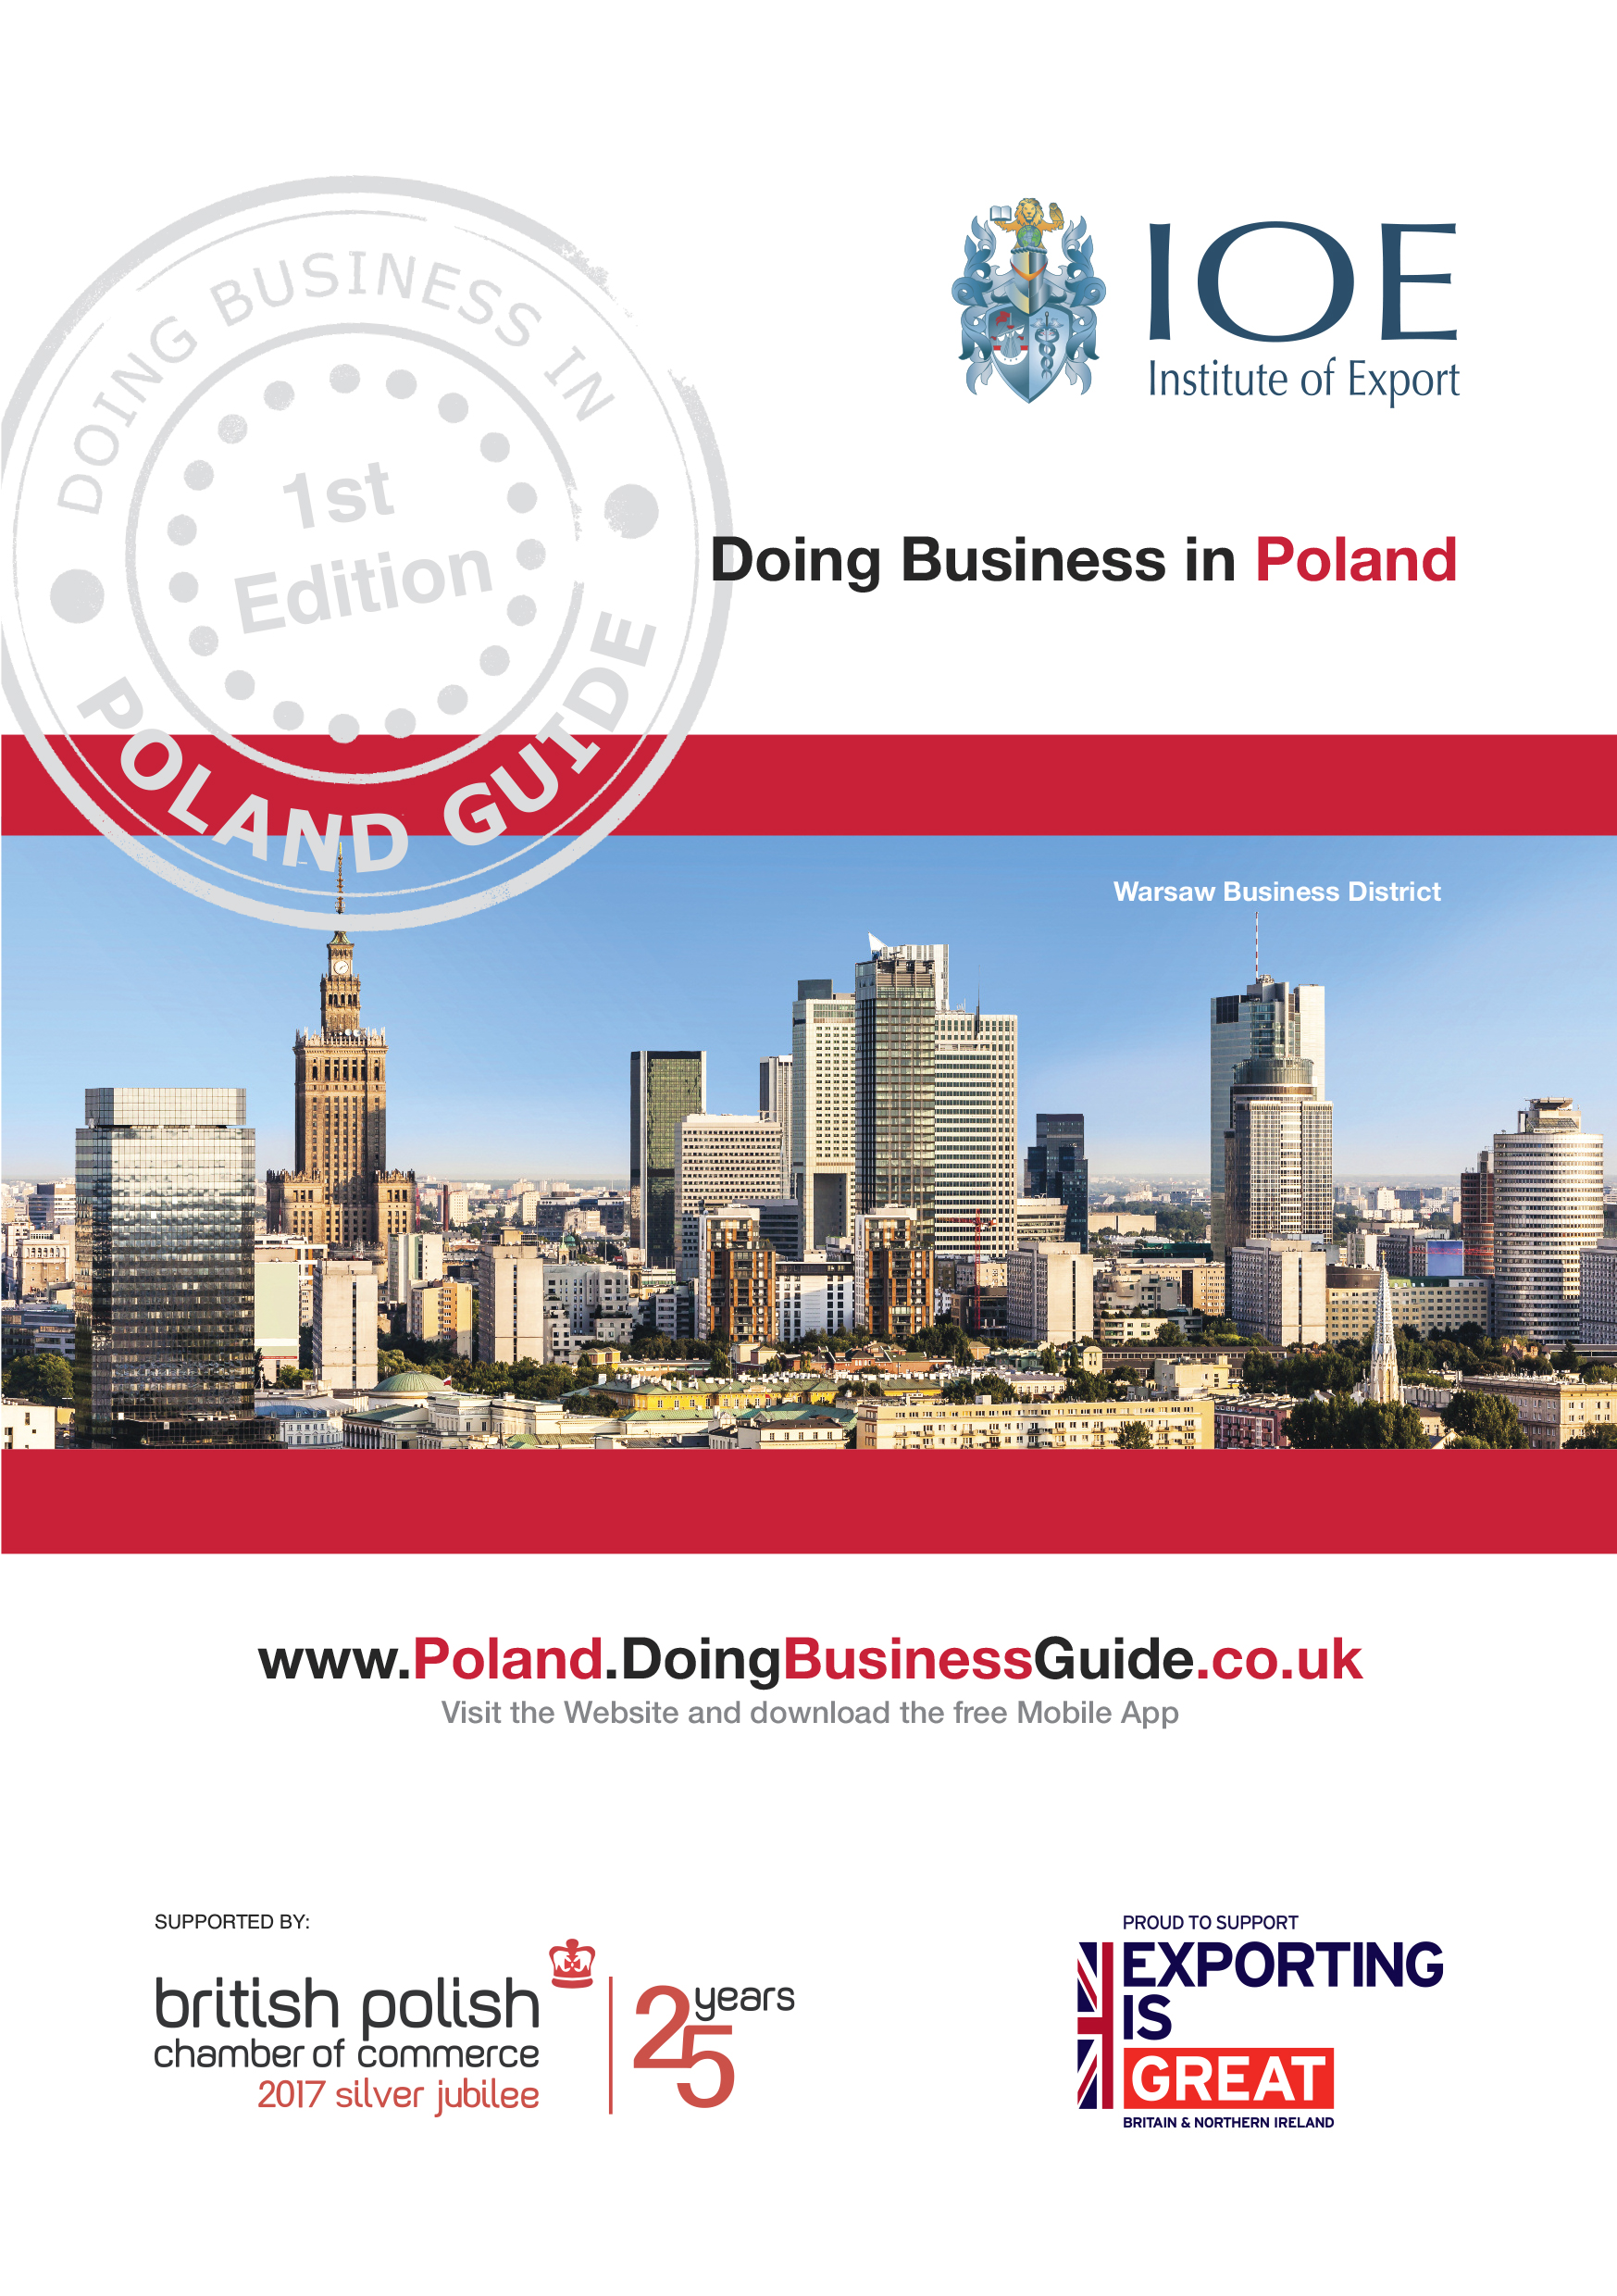 Doing Business in Poland guide front cover